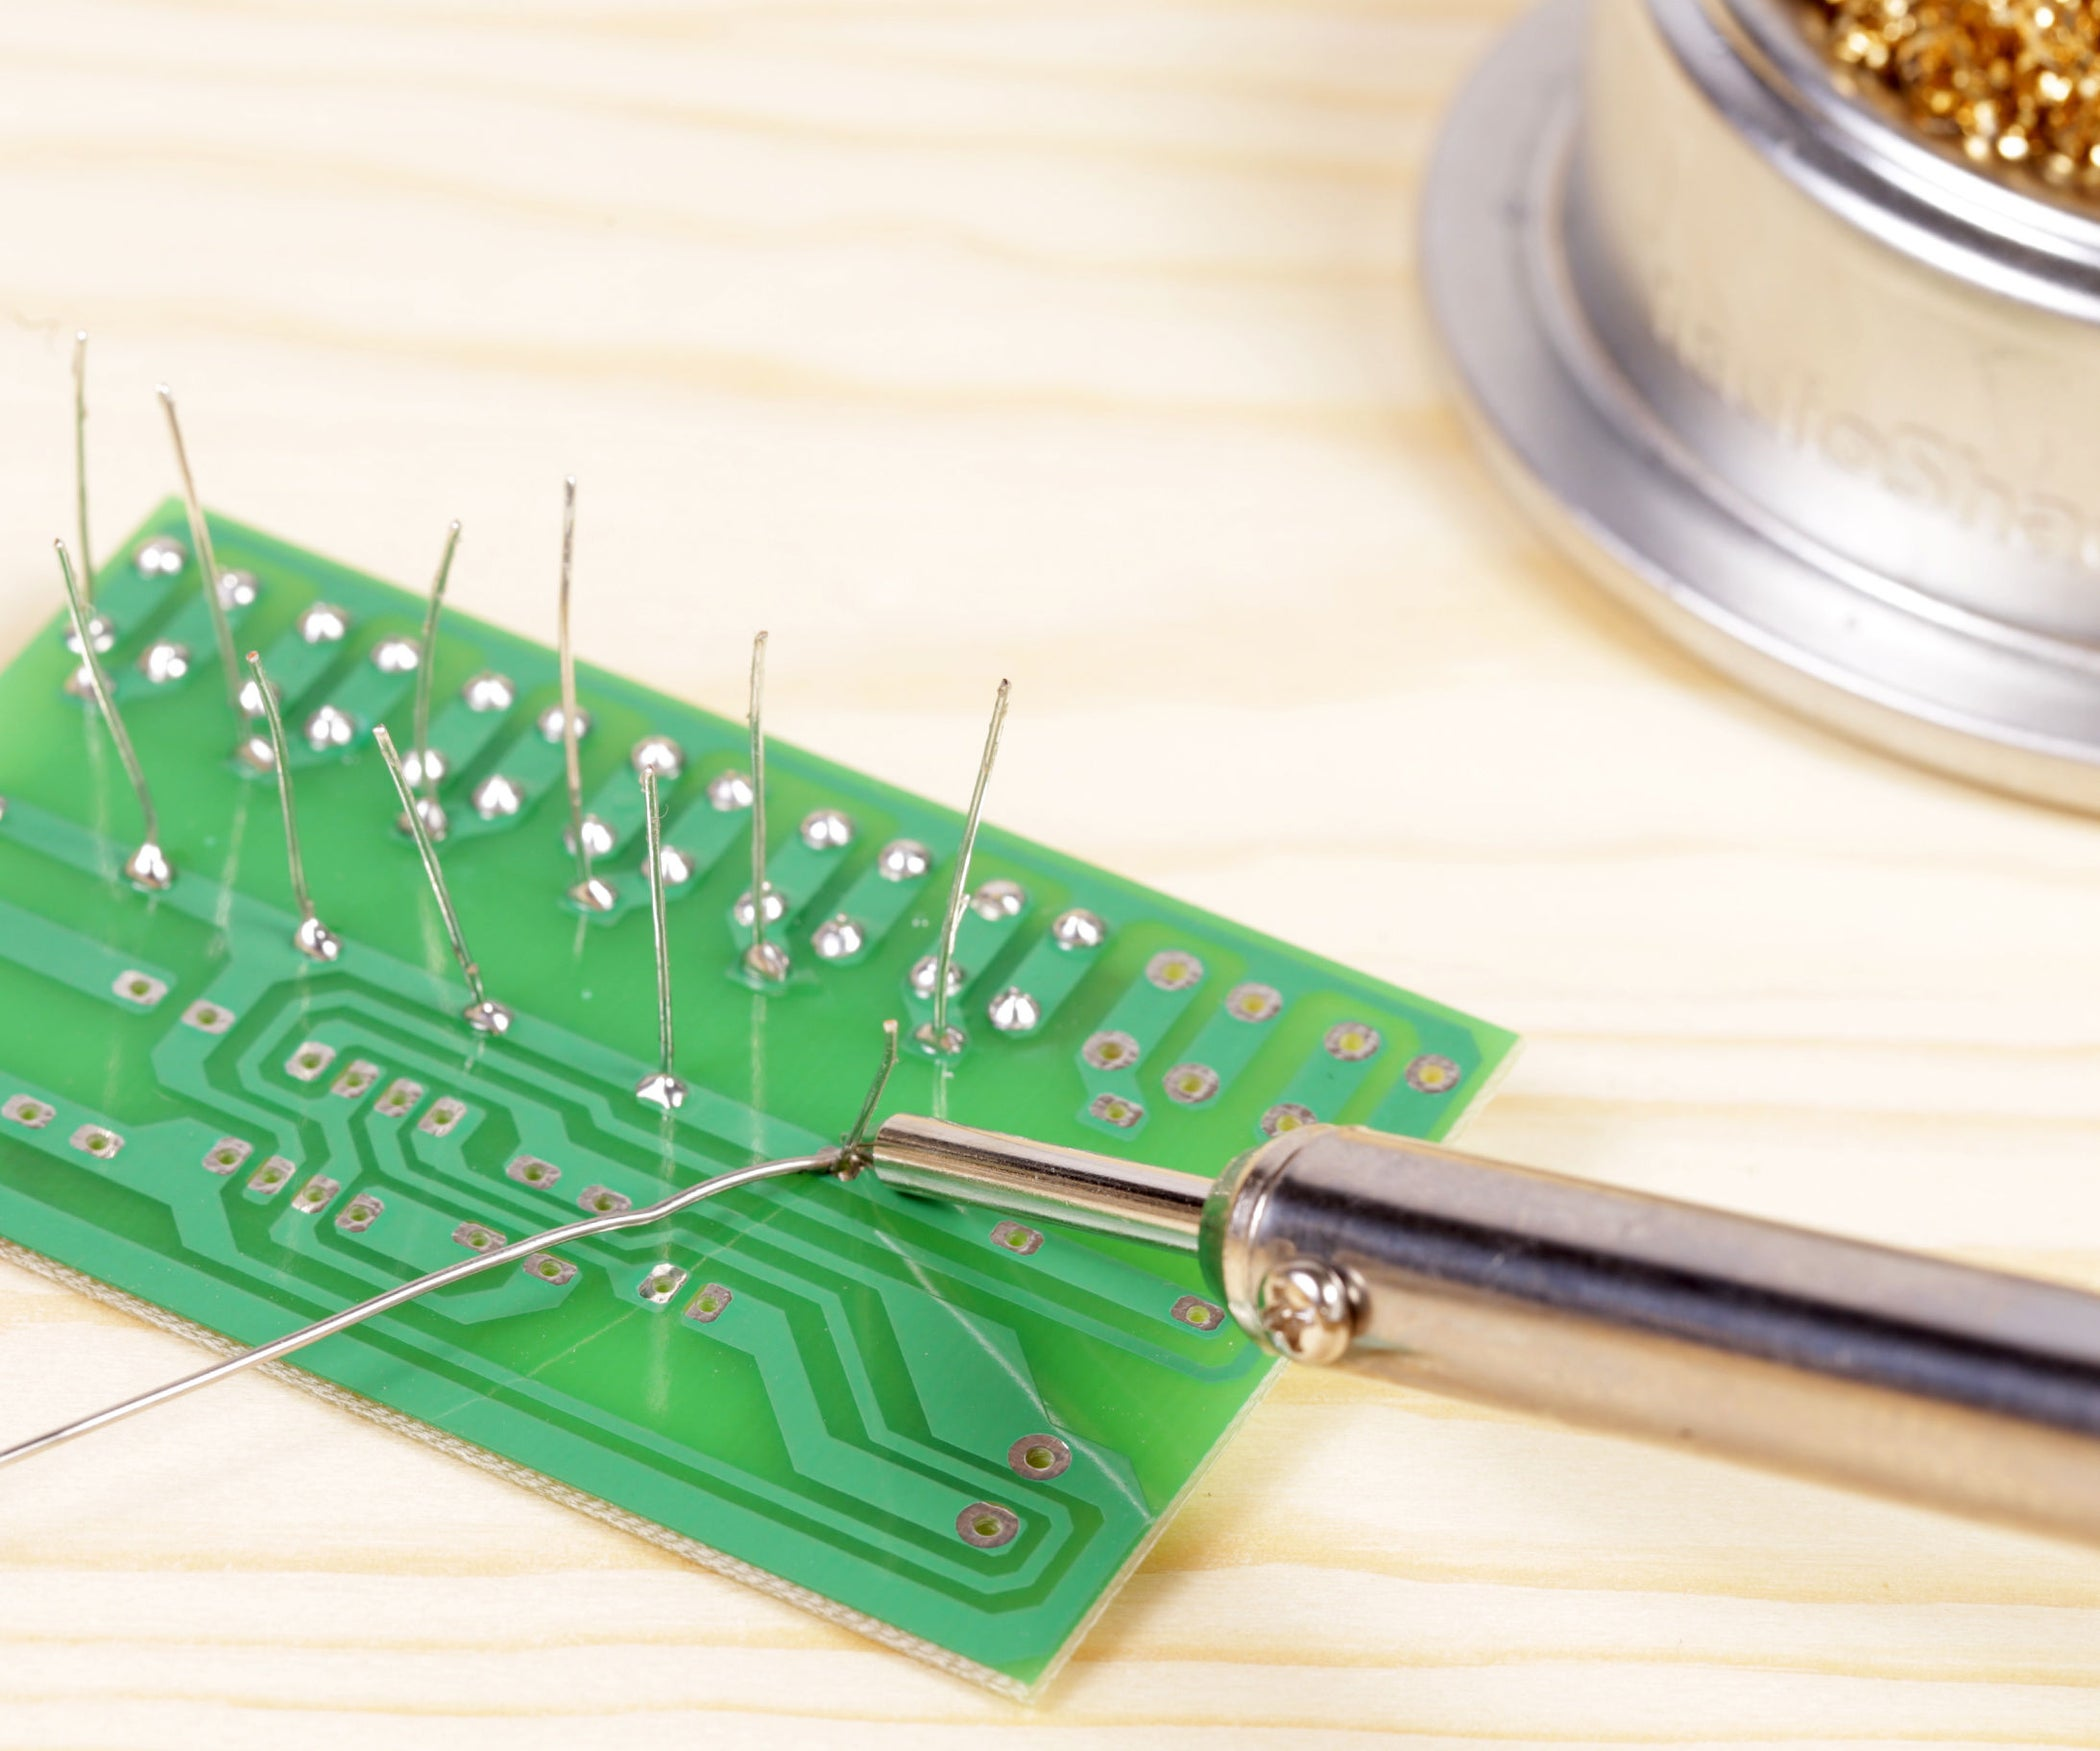 Soldering How To Solder Remove A Resistor Soldered Circuit Board